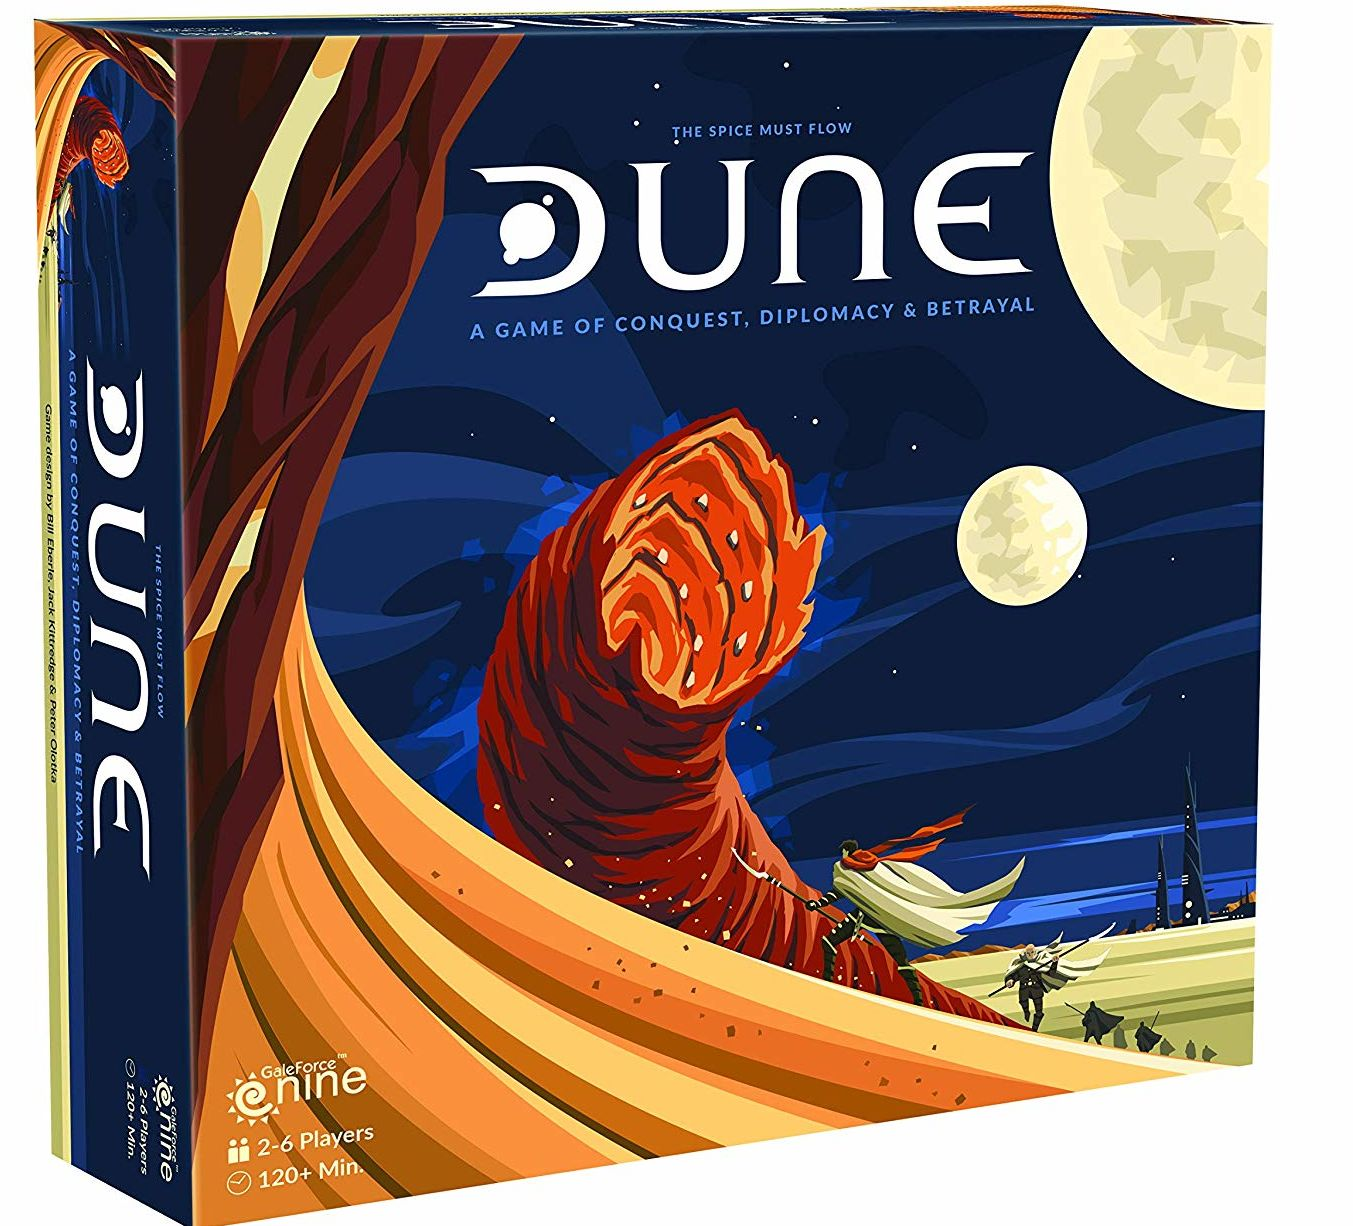 THe classic Dune game is back.